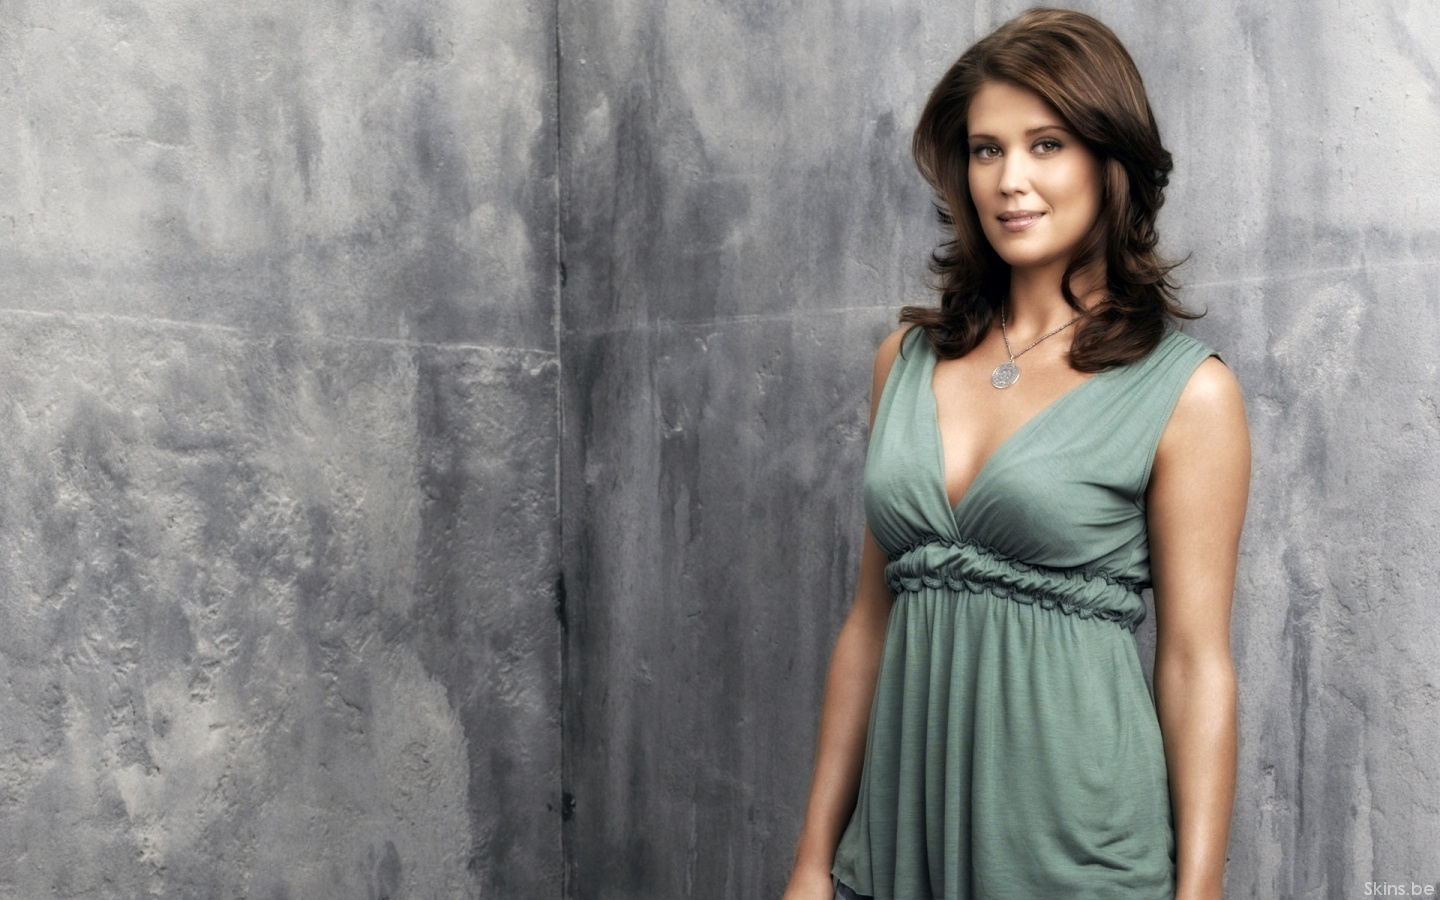 Sarah Lancaster desktop wallpaper download in widescreen hd 1440x900